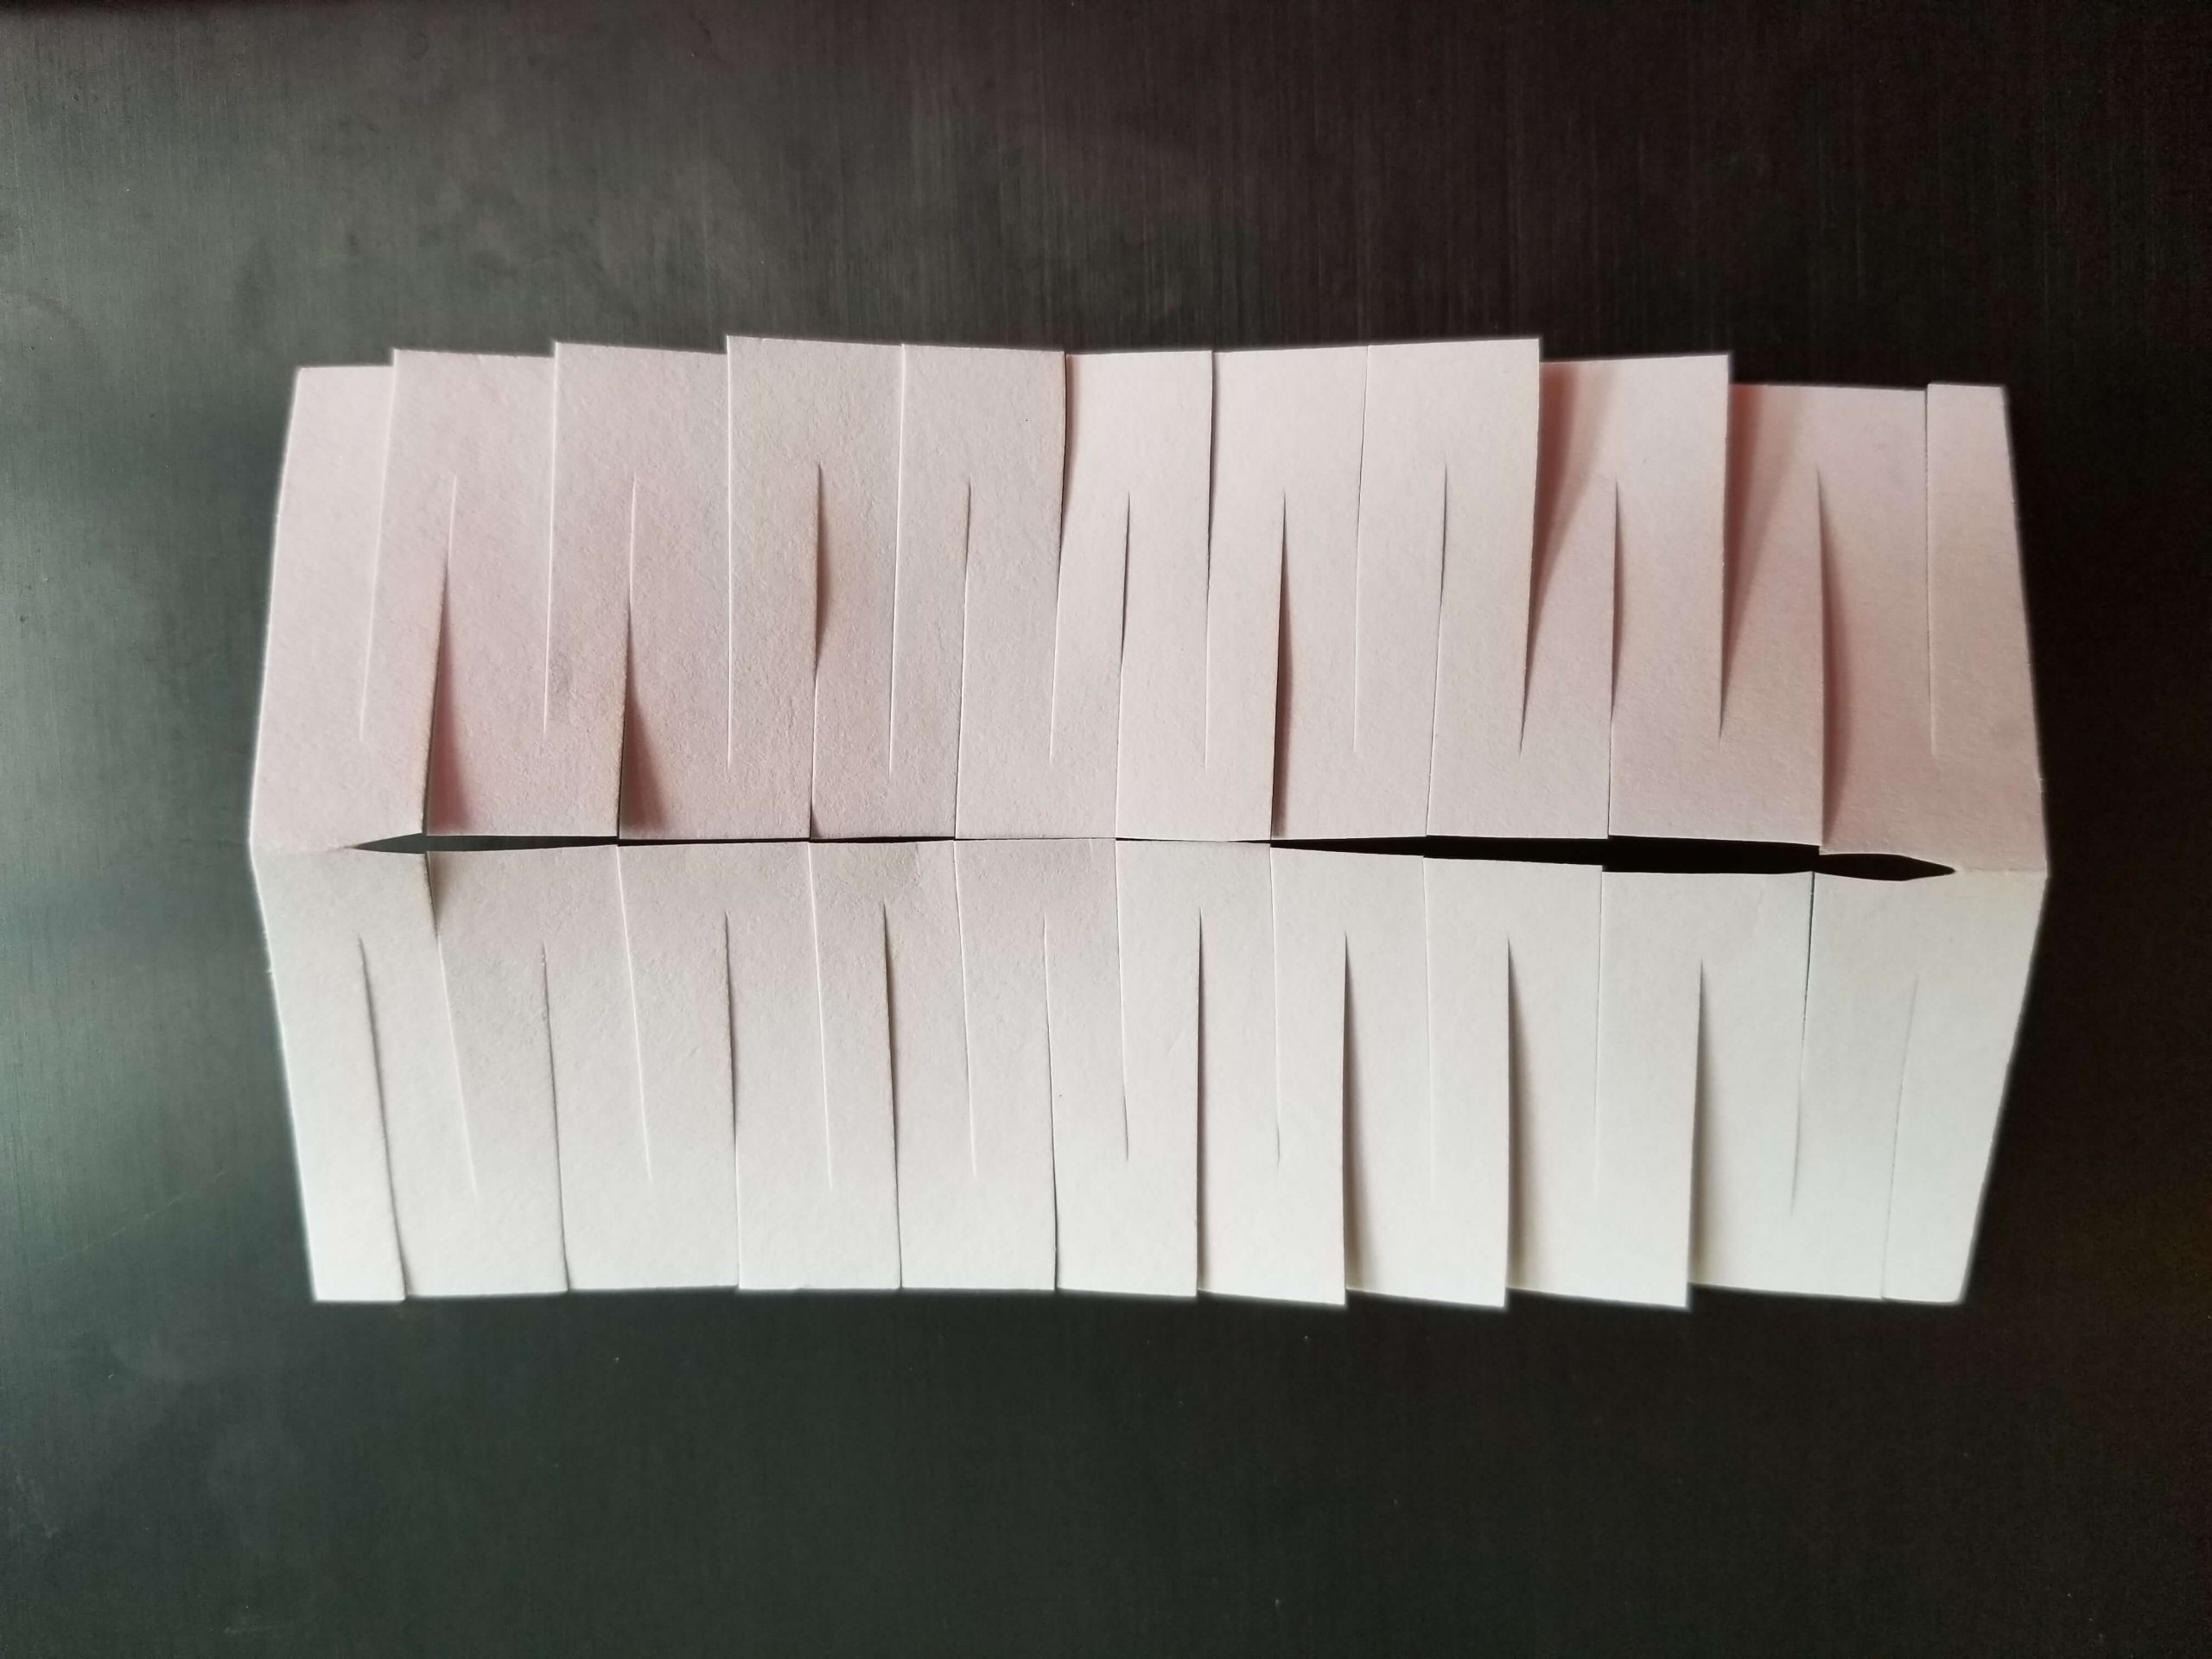 How to cut the middle of the index card to step through the card